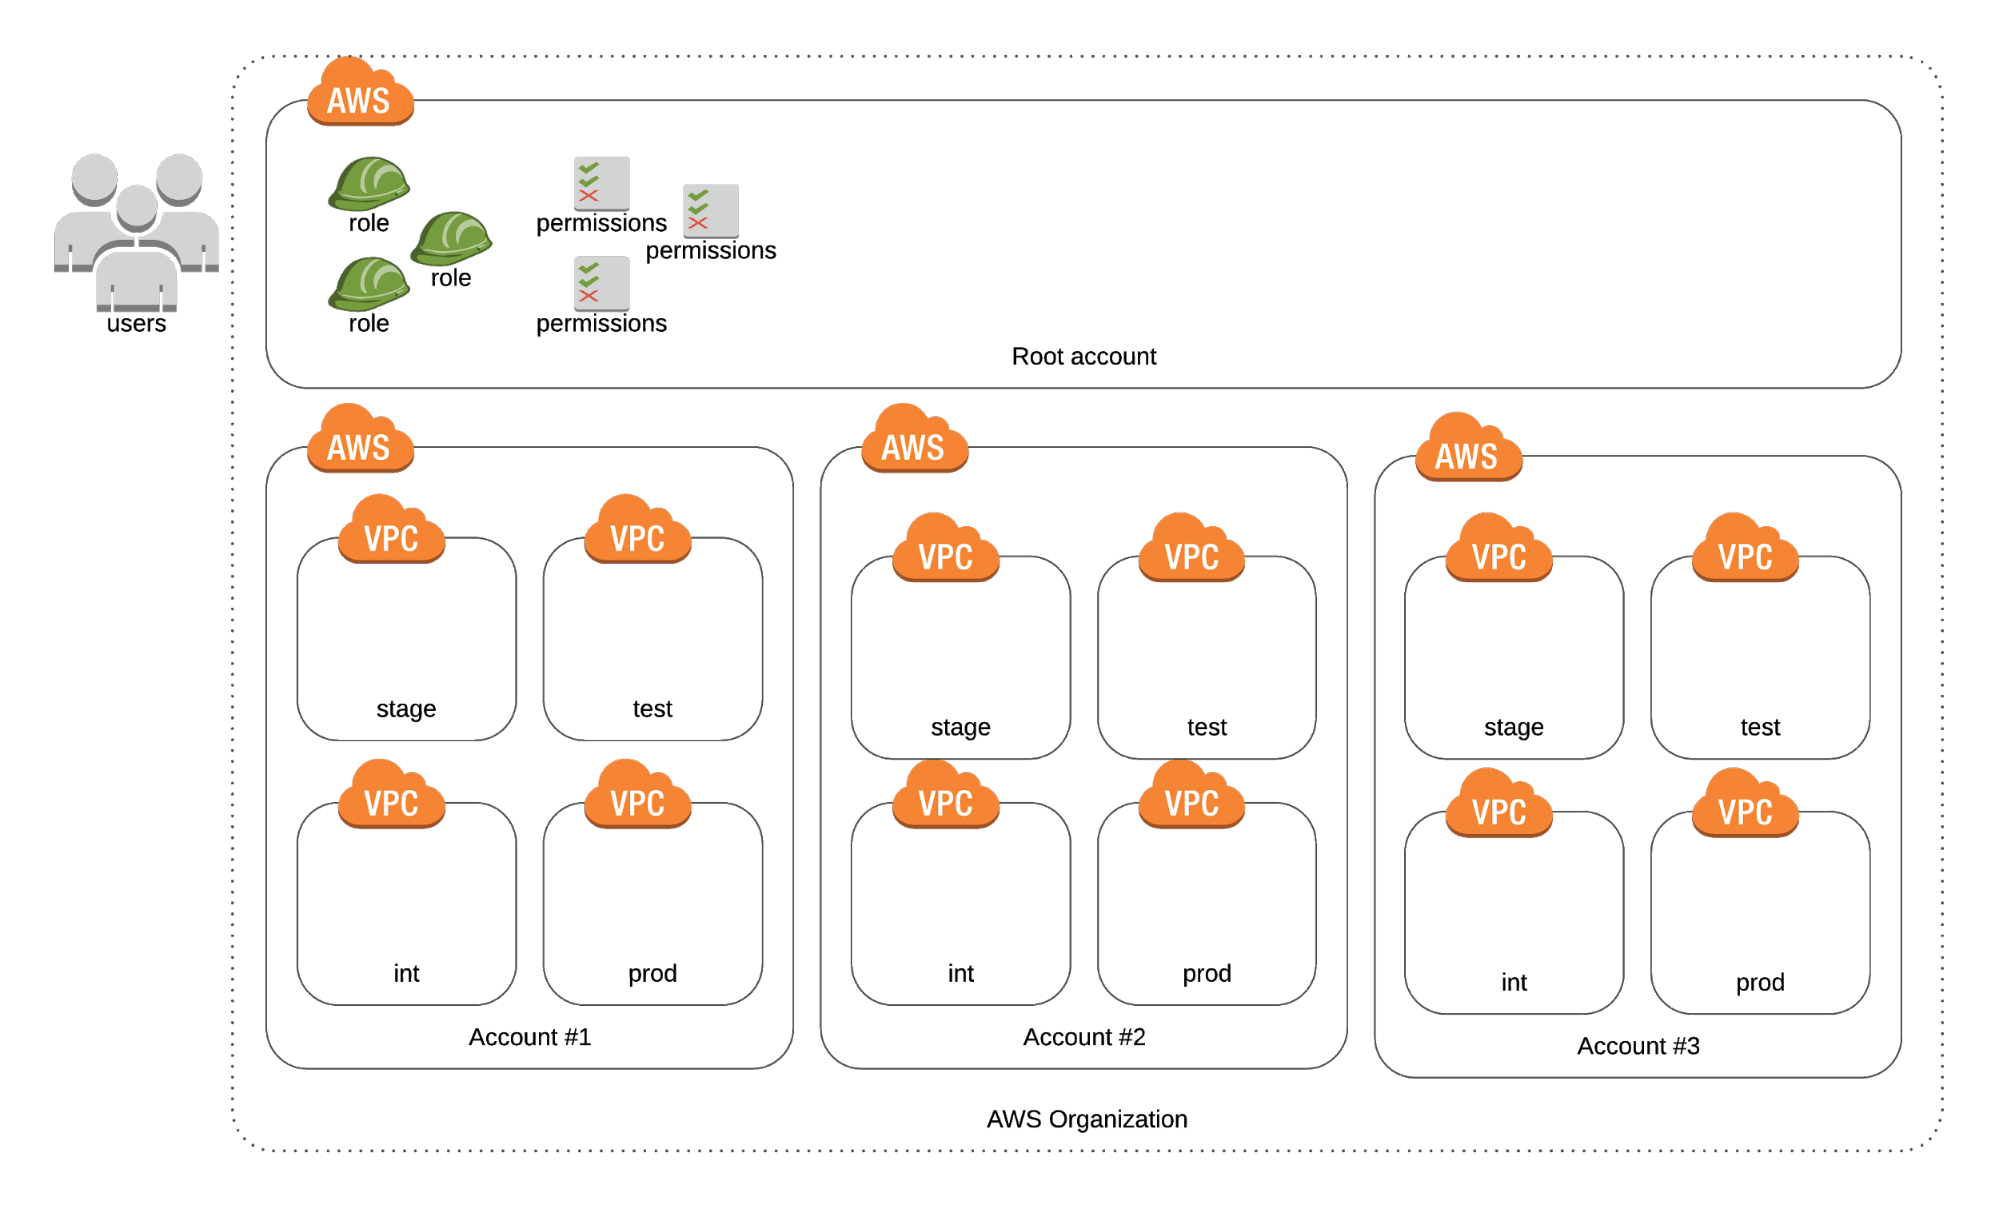 How to Achieve Fine-Grained Control with AWS Organizations